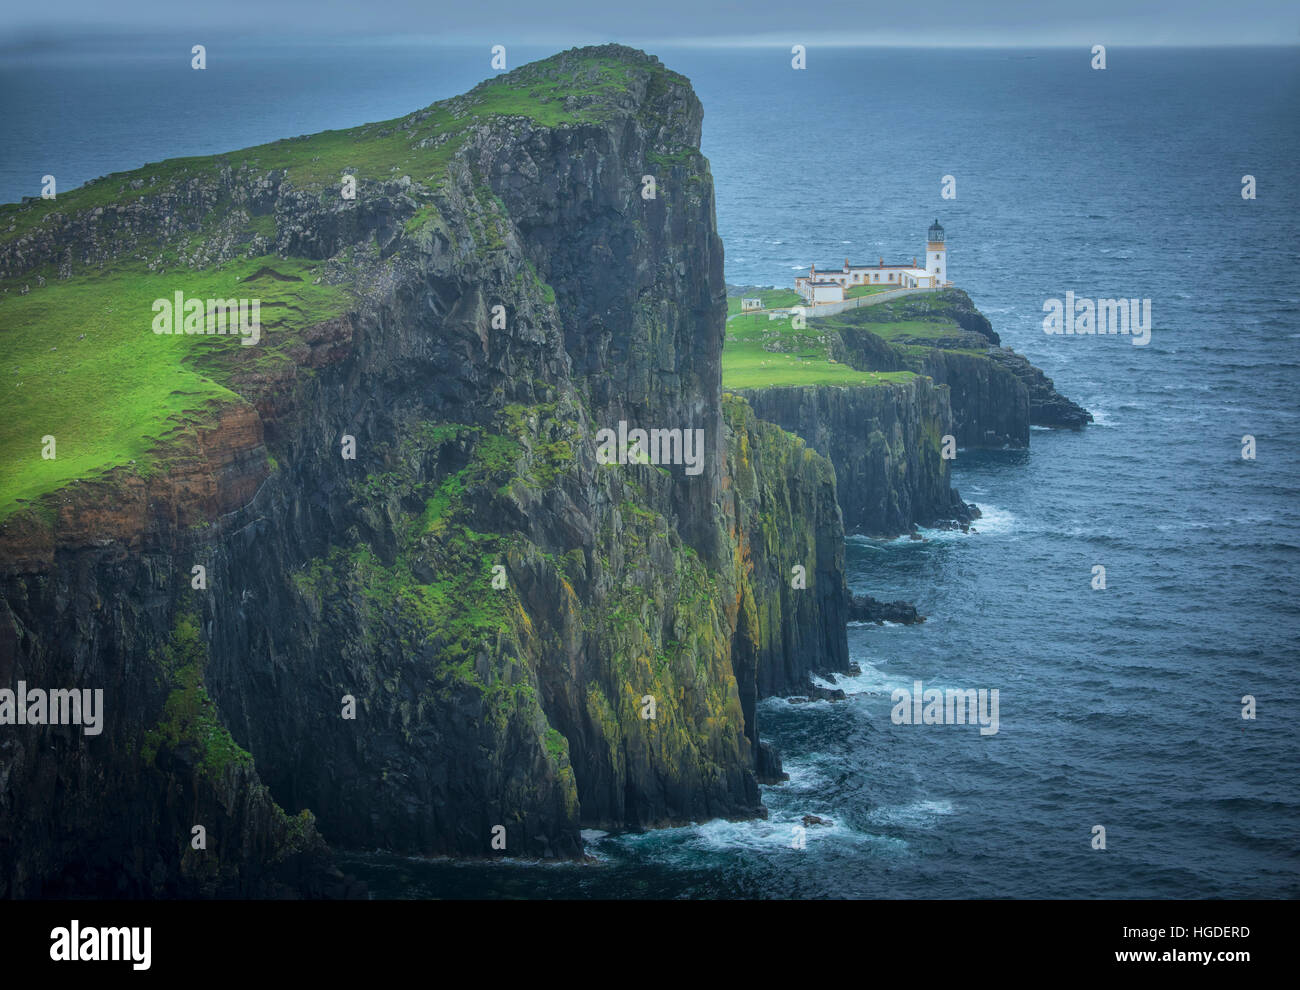 Scotland, Hebrides archipelago, Isle of Skye, Neist Lighthouse - Stock Image